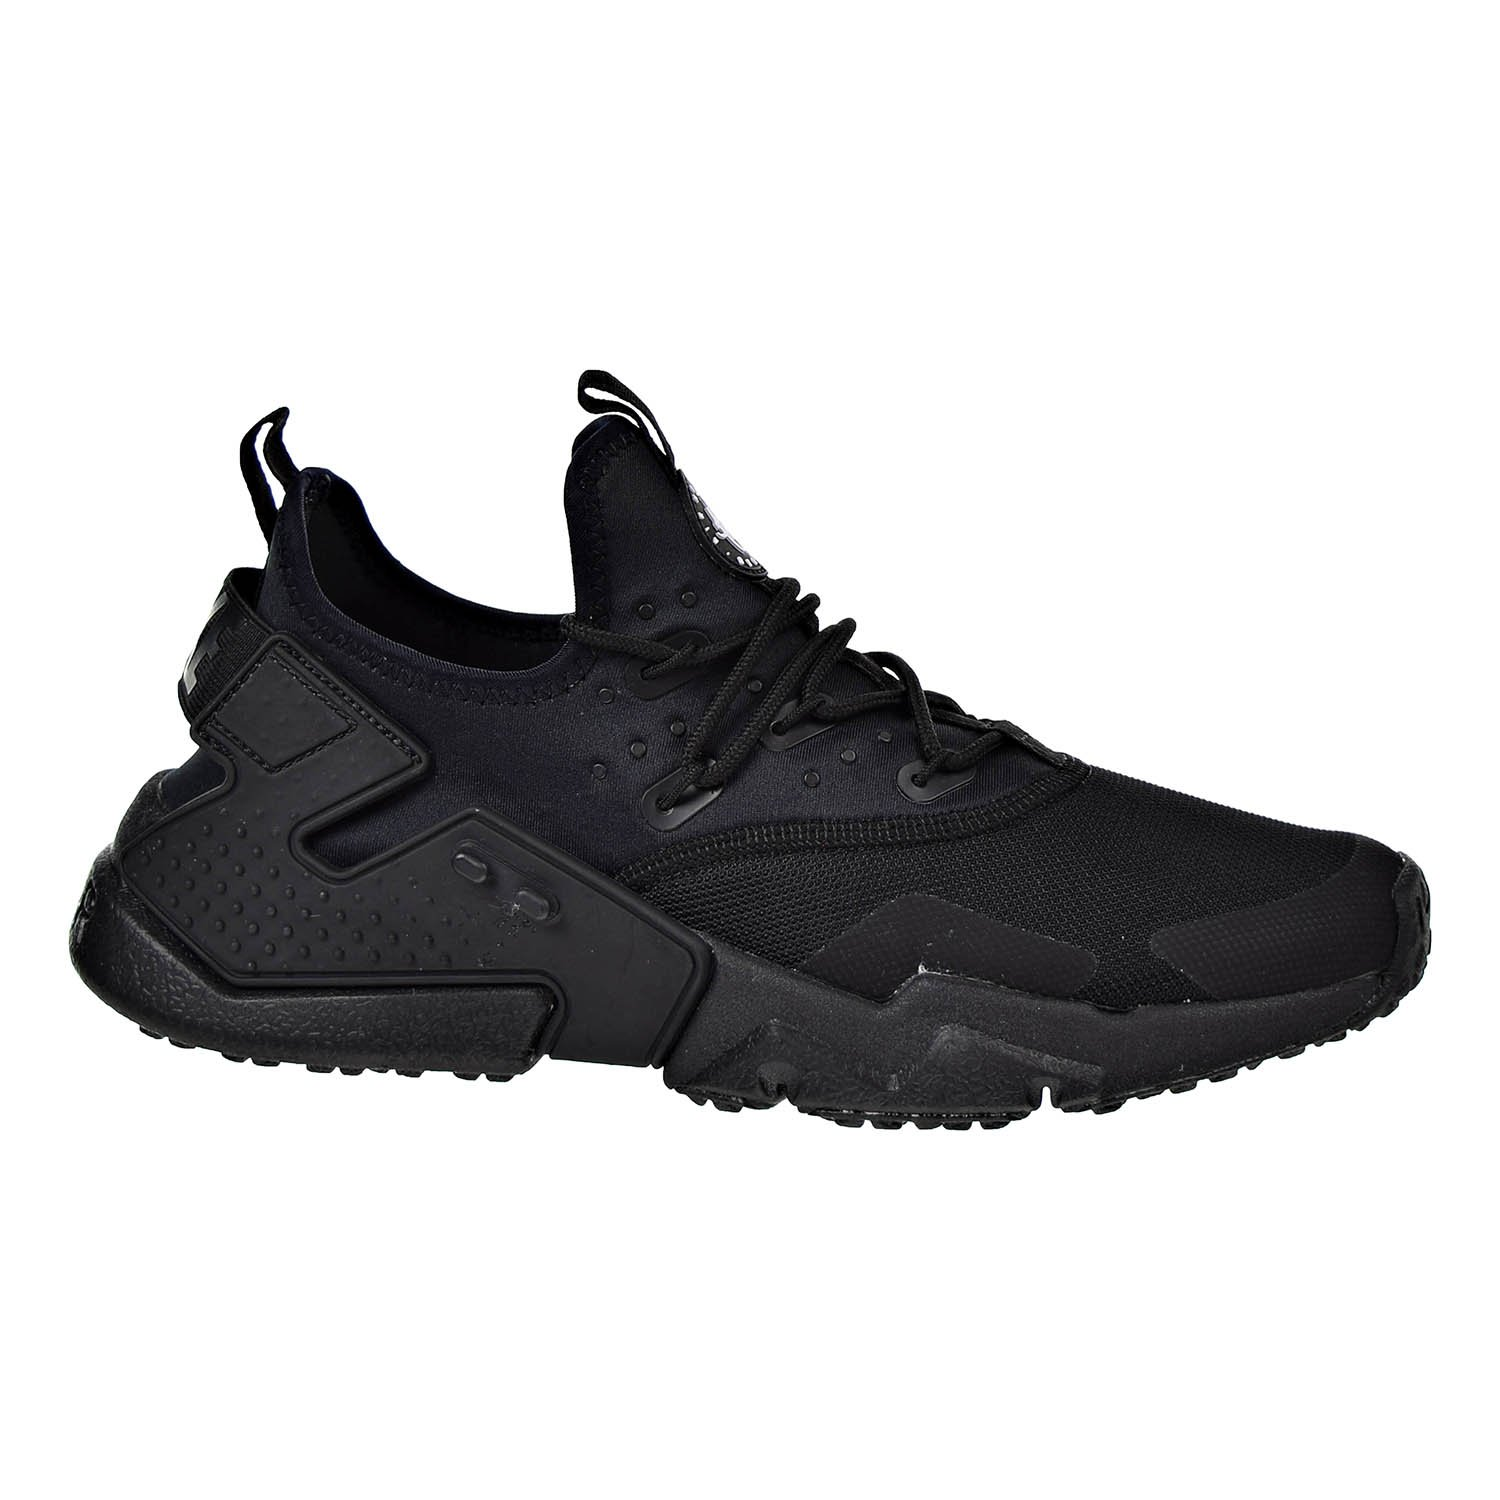 the latest 8ad1e cedd6 Galleon - NIKE Air Huarache Drift Men s Athletic Shoes Black White  Ah7334-003 (7.5 D(M) US)